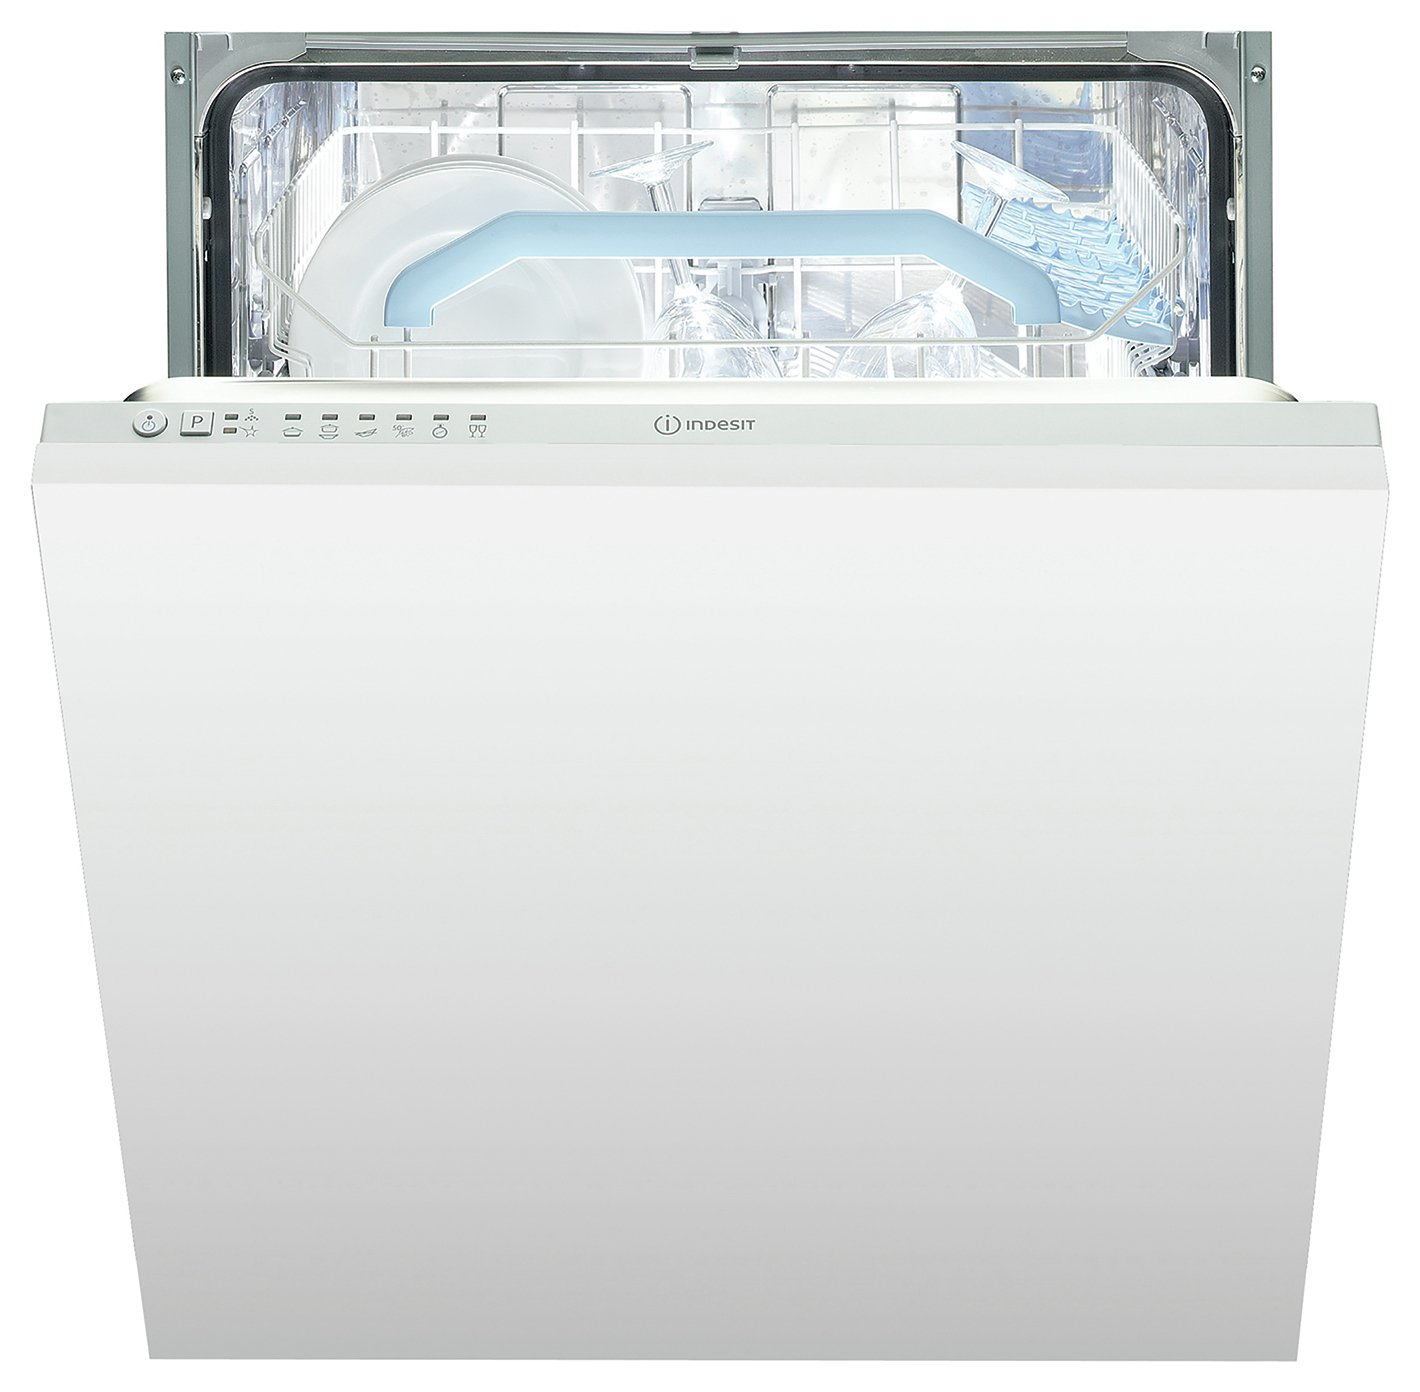 Indesit DIF16B1 Full Size Integrated Dishwasher - White